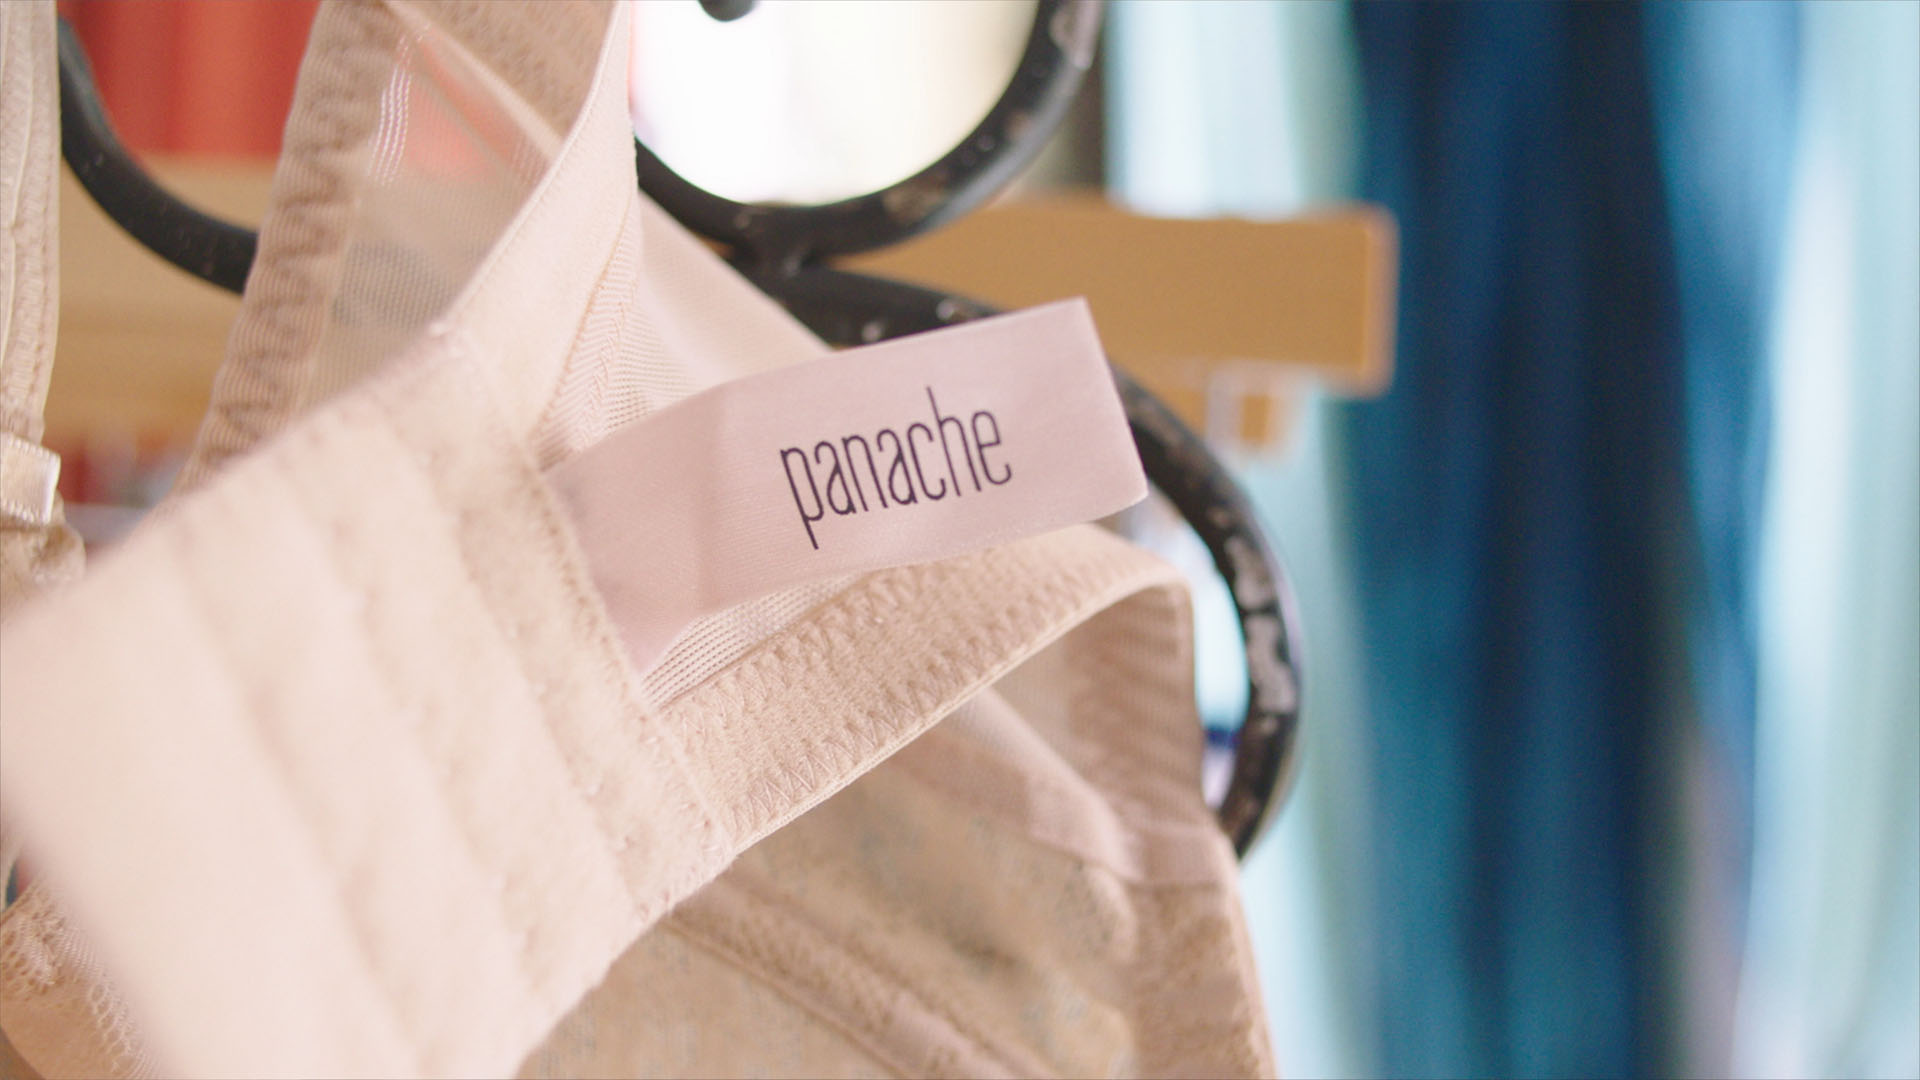 panache find your fit bra rack